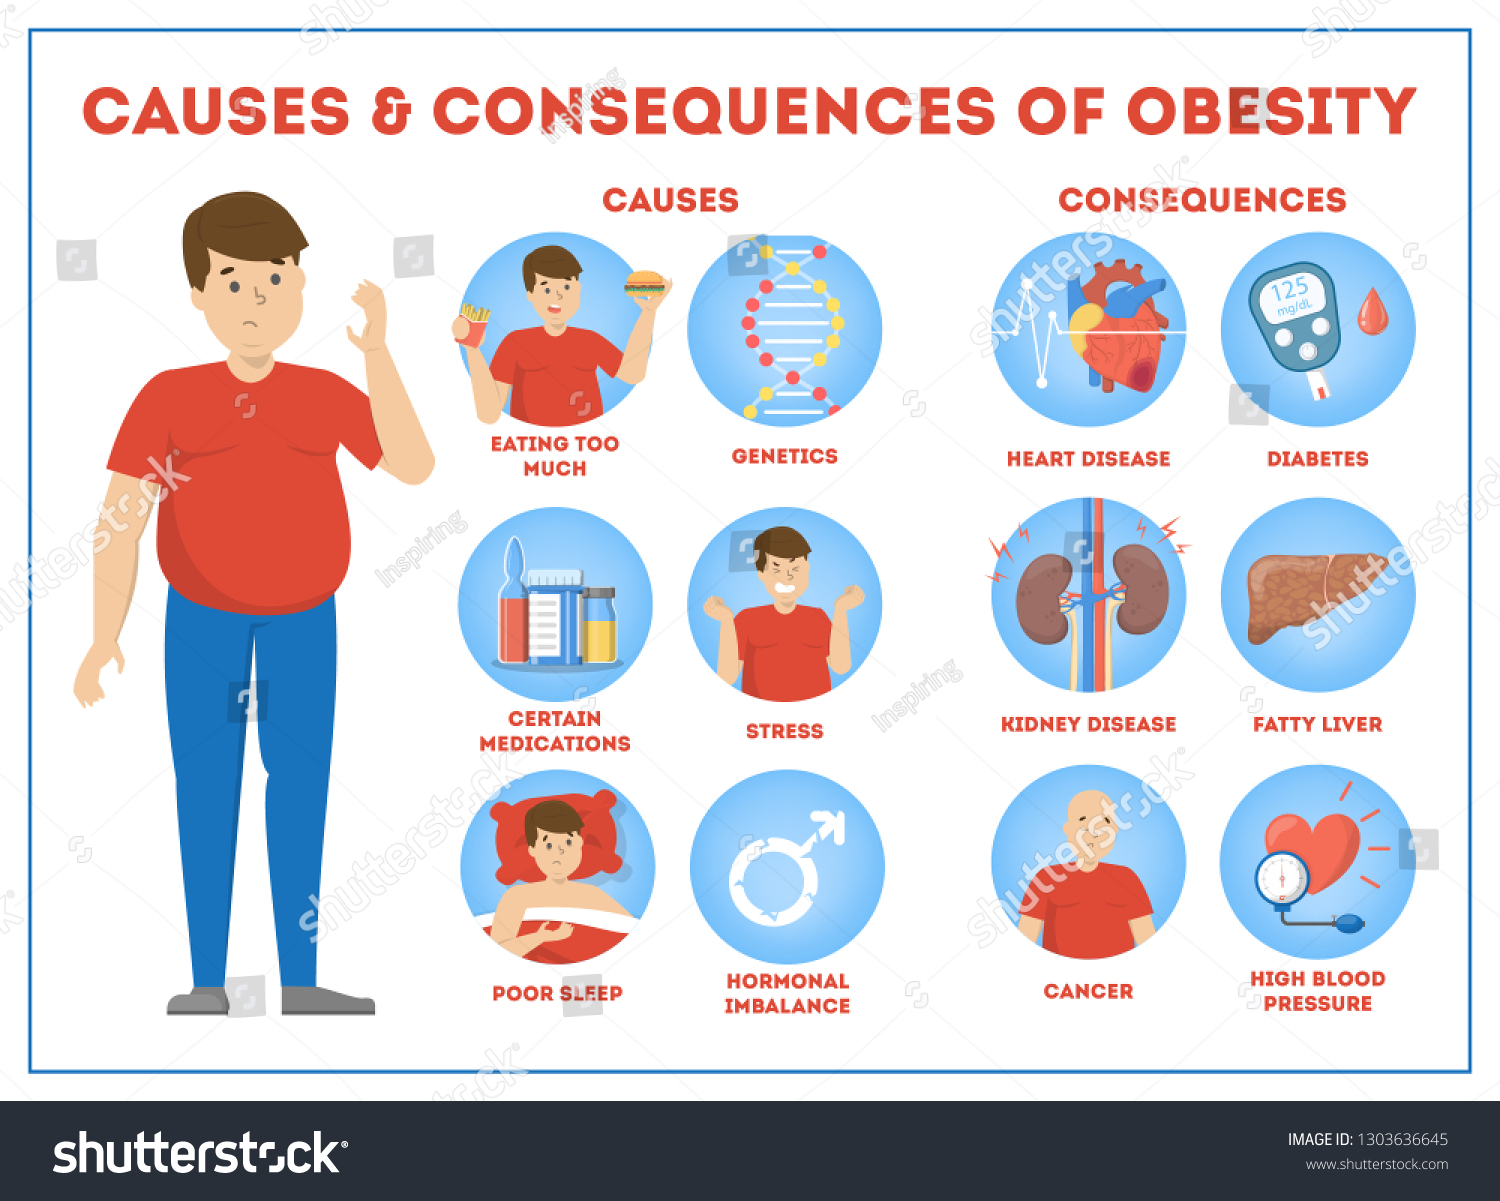 Obesity Causes Consequences Infographic Overweight People Stock Vector Royalty Free 1303636645